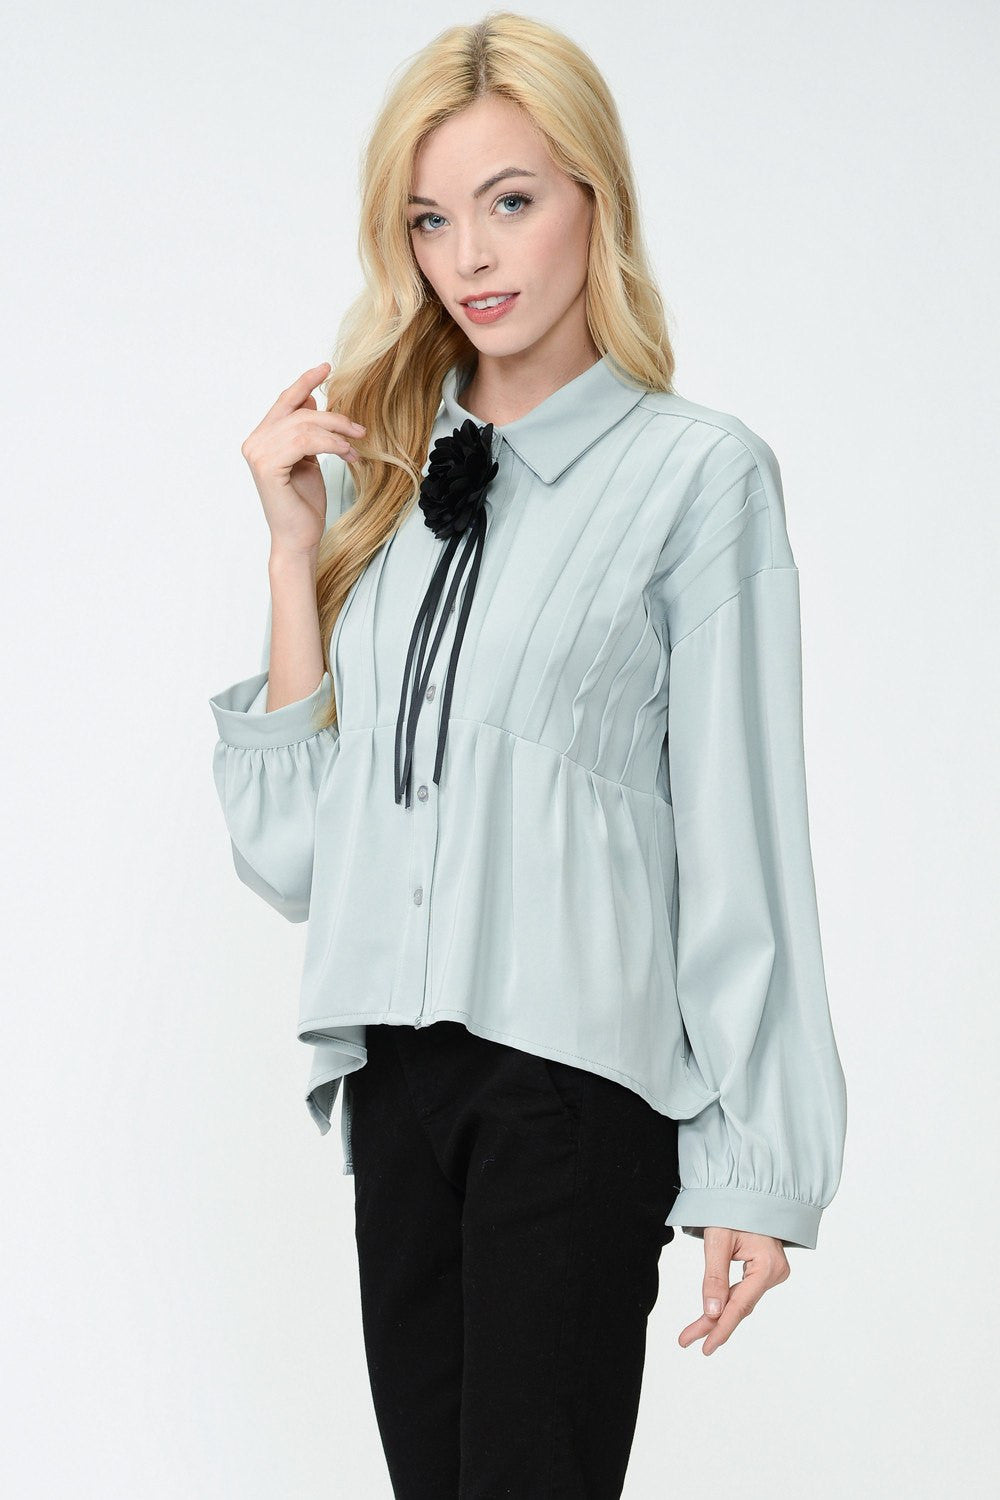 Mint Condition Blouse by Sister Jane